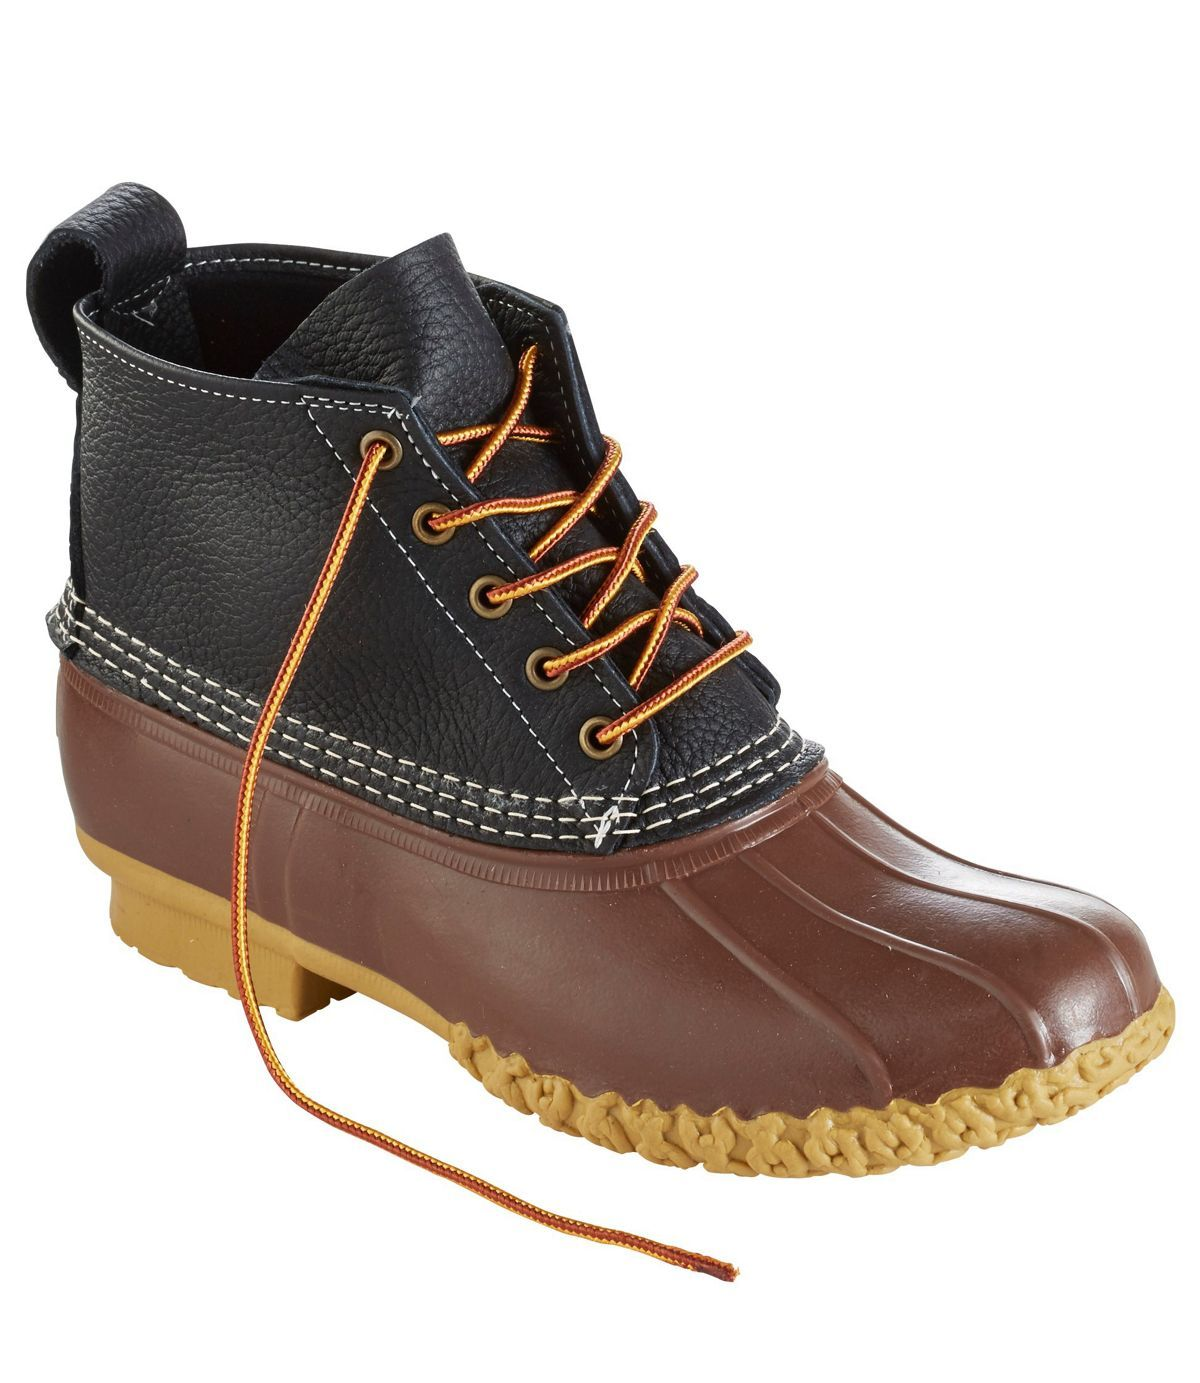 b01be4f47fb L.L.Bean's Summer Sale Is Happening and Bean Boots Are Under $100